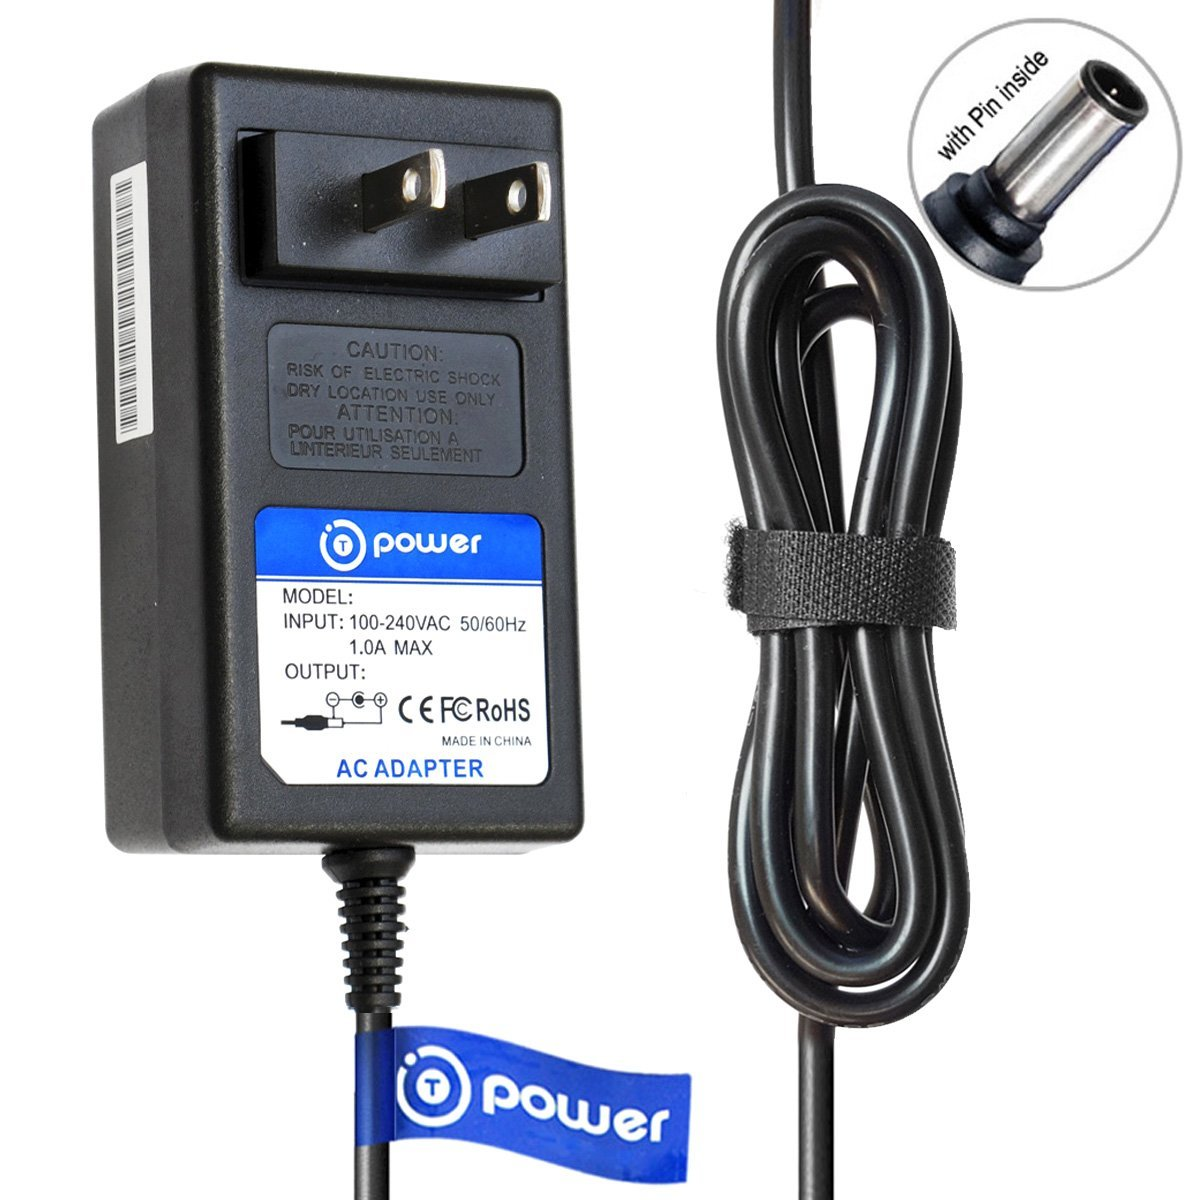 T-Power (( 6.6 Feet Cable )) Ac Adapter for Sony TMR-RF985R MDR-RF985R Wireless Headphone RF Stereo Transmitter Power Supply Charger Power Supply